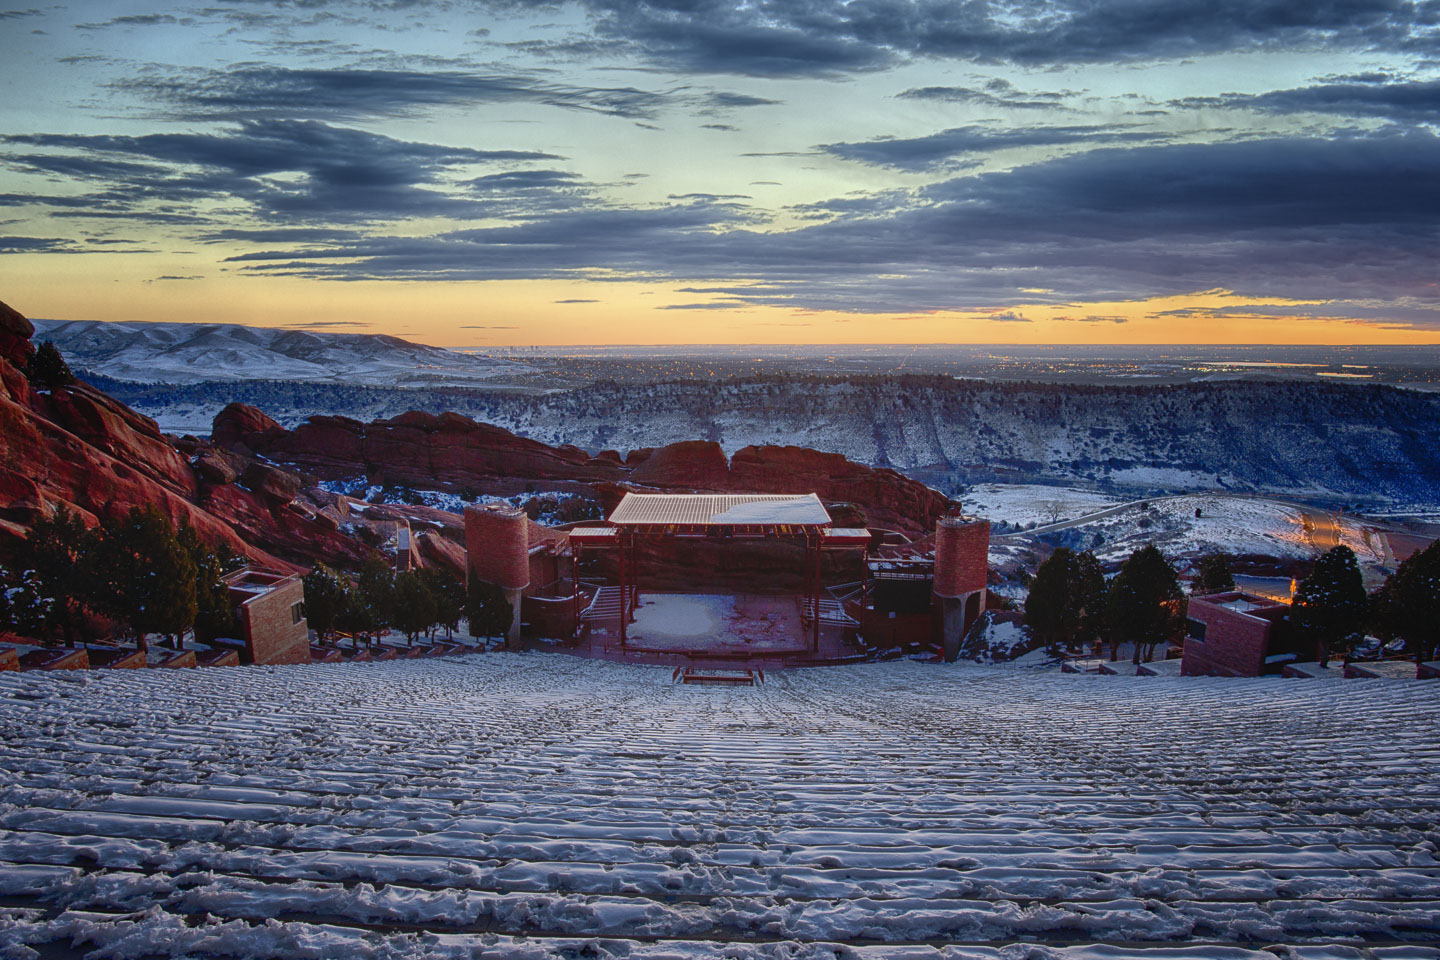 red-rocks-amphitheater-117.jpg